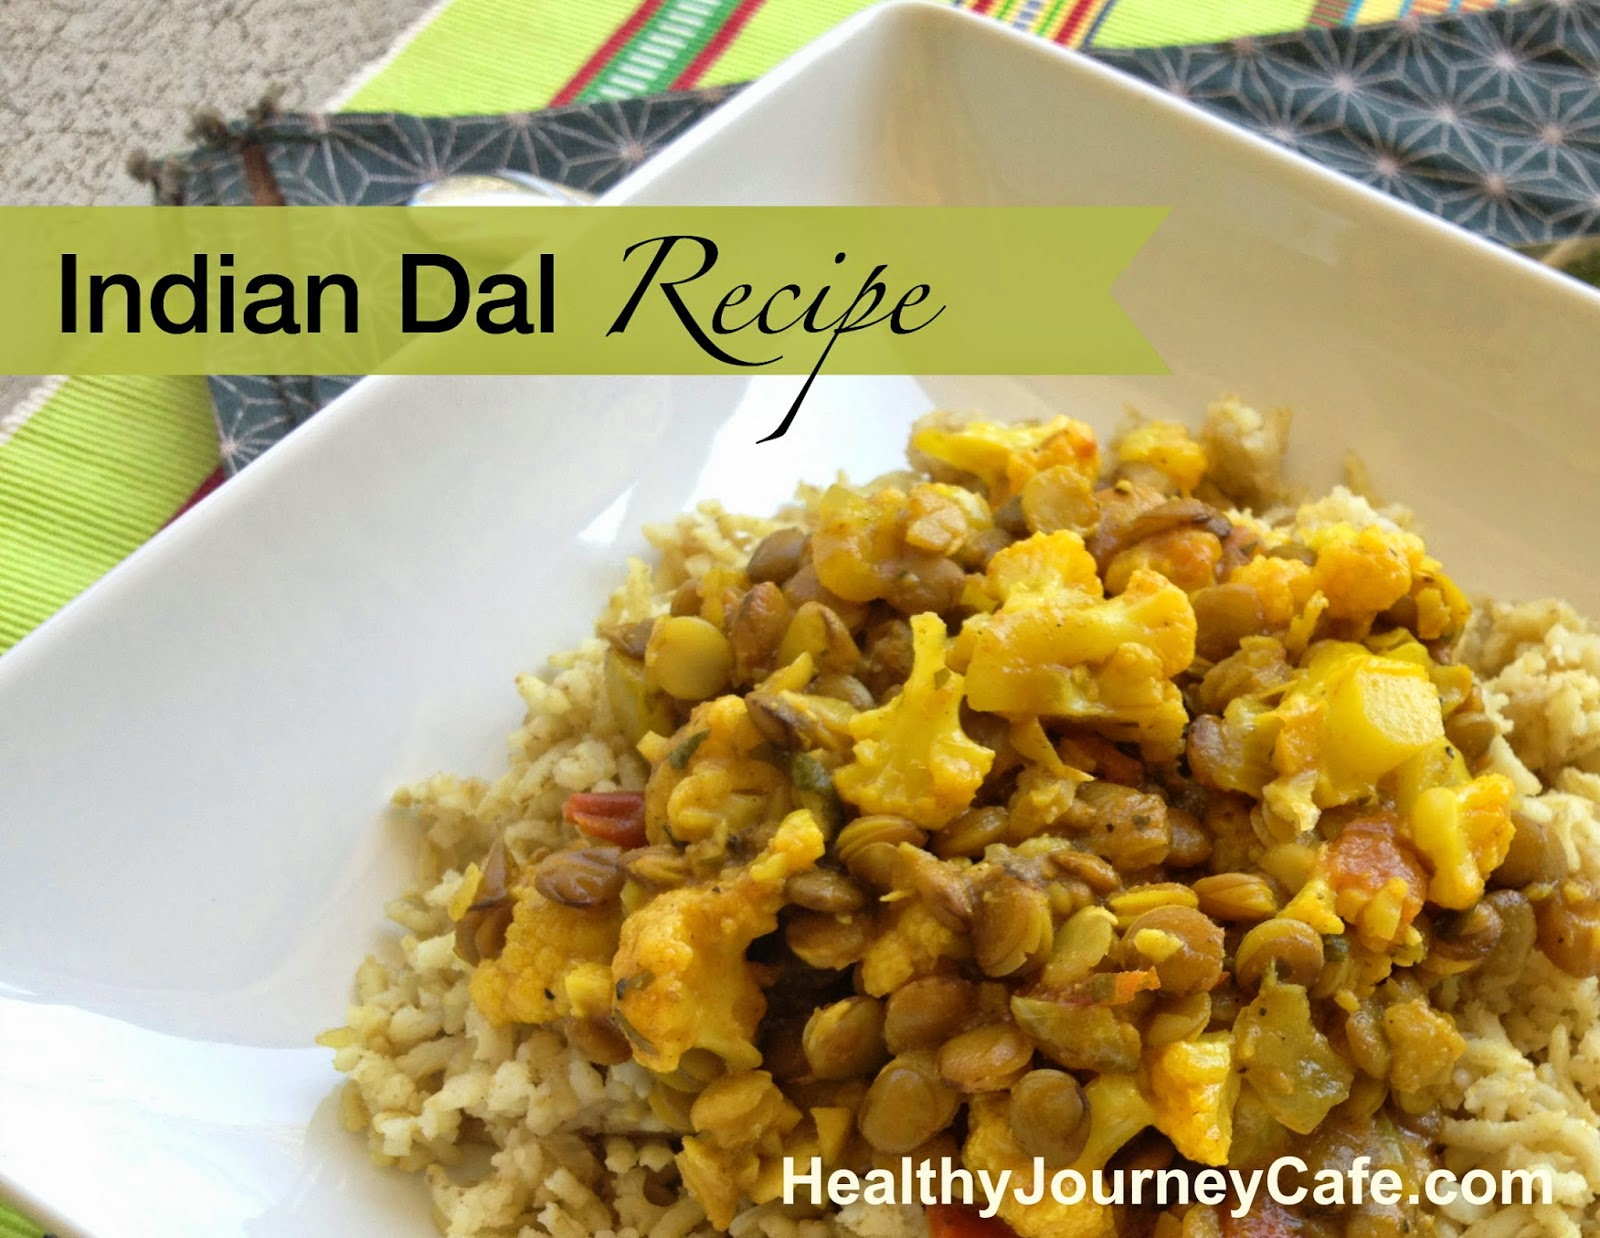 Indian dal recipe healthy journey cafe indian dal recipe forumfinder Images